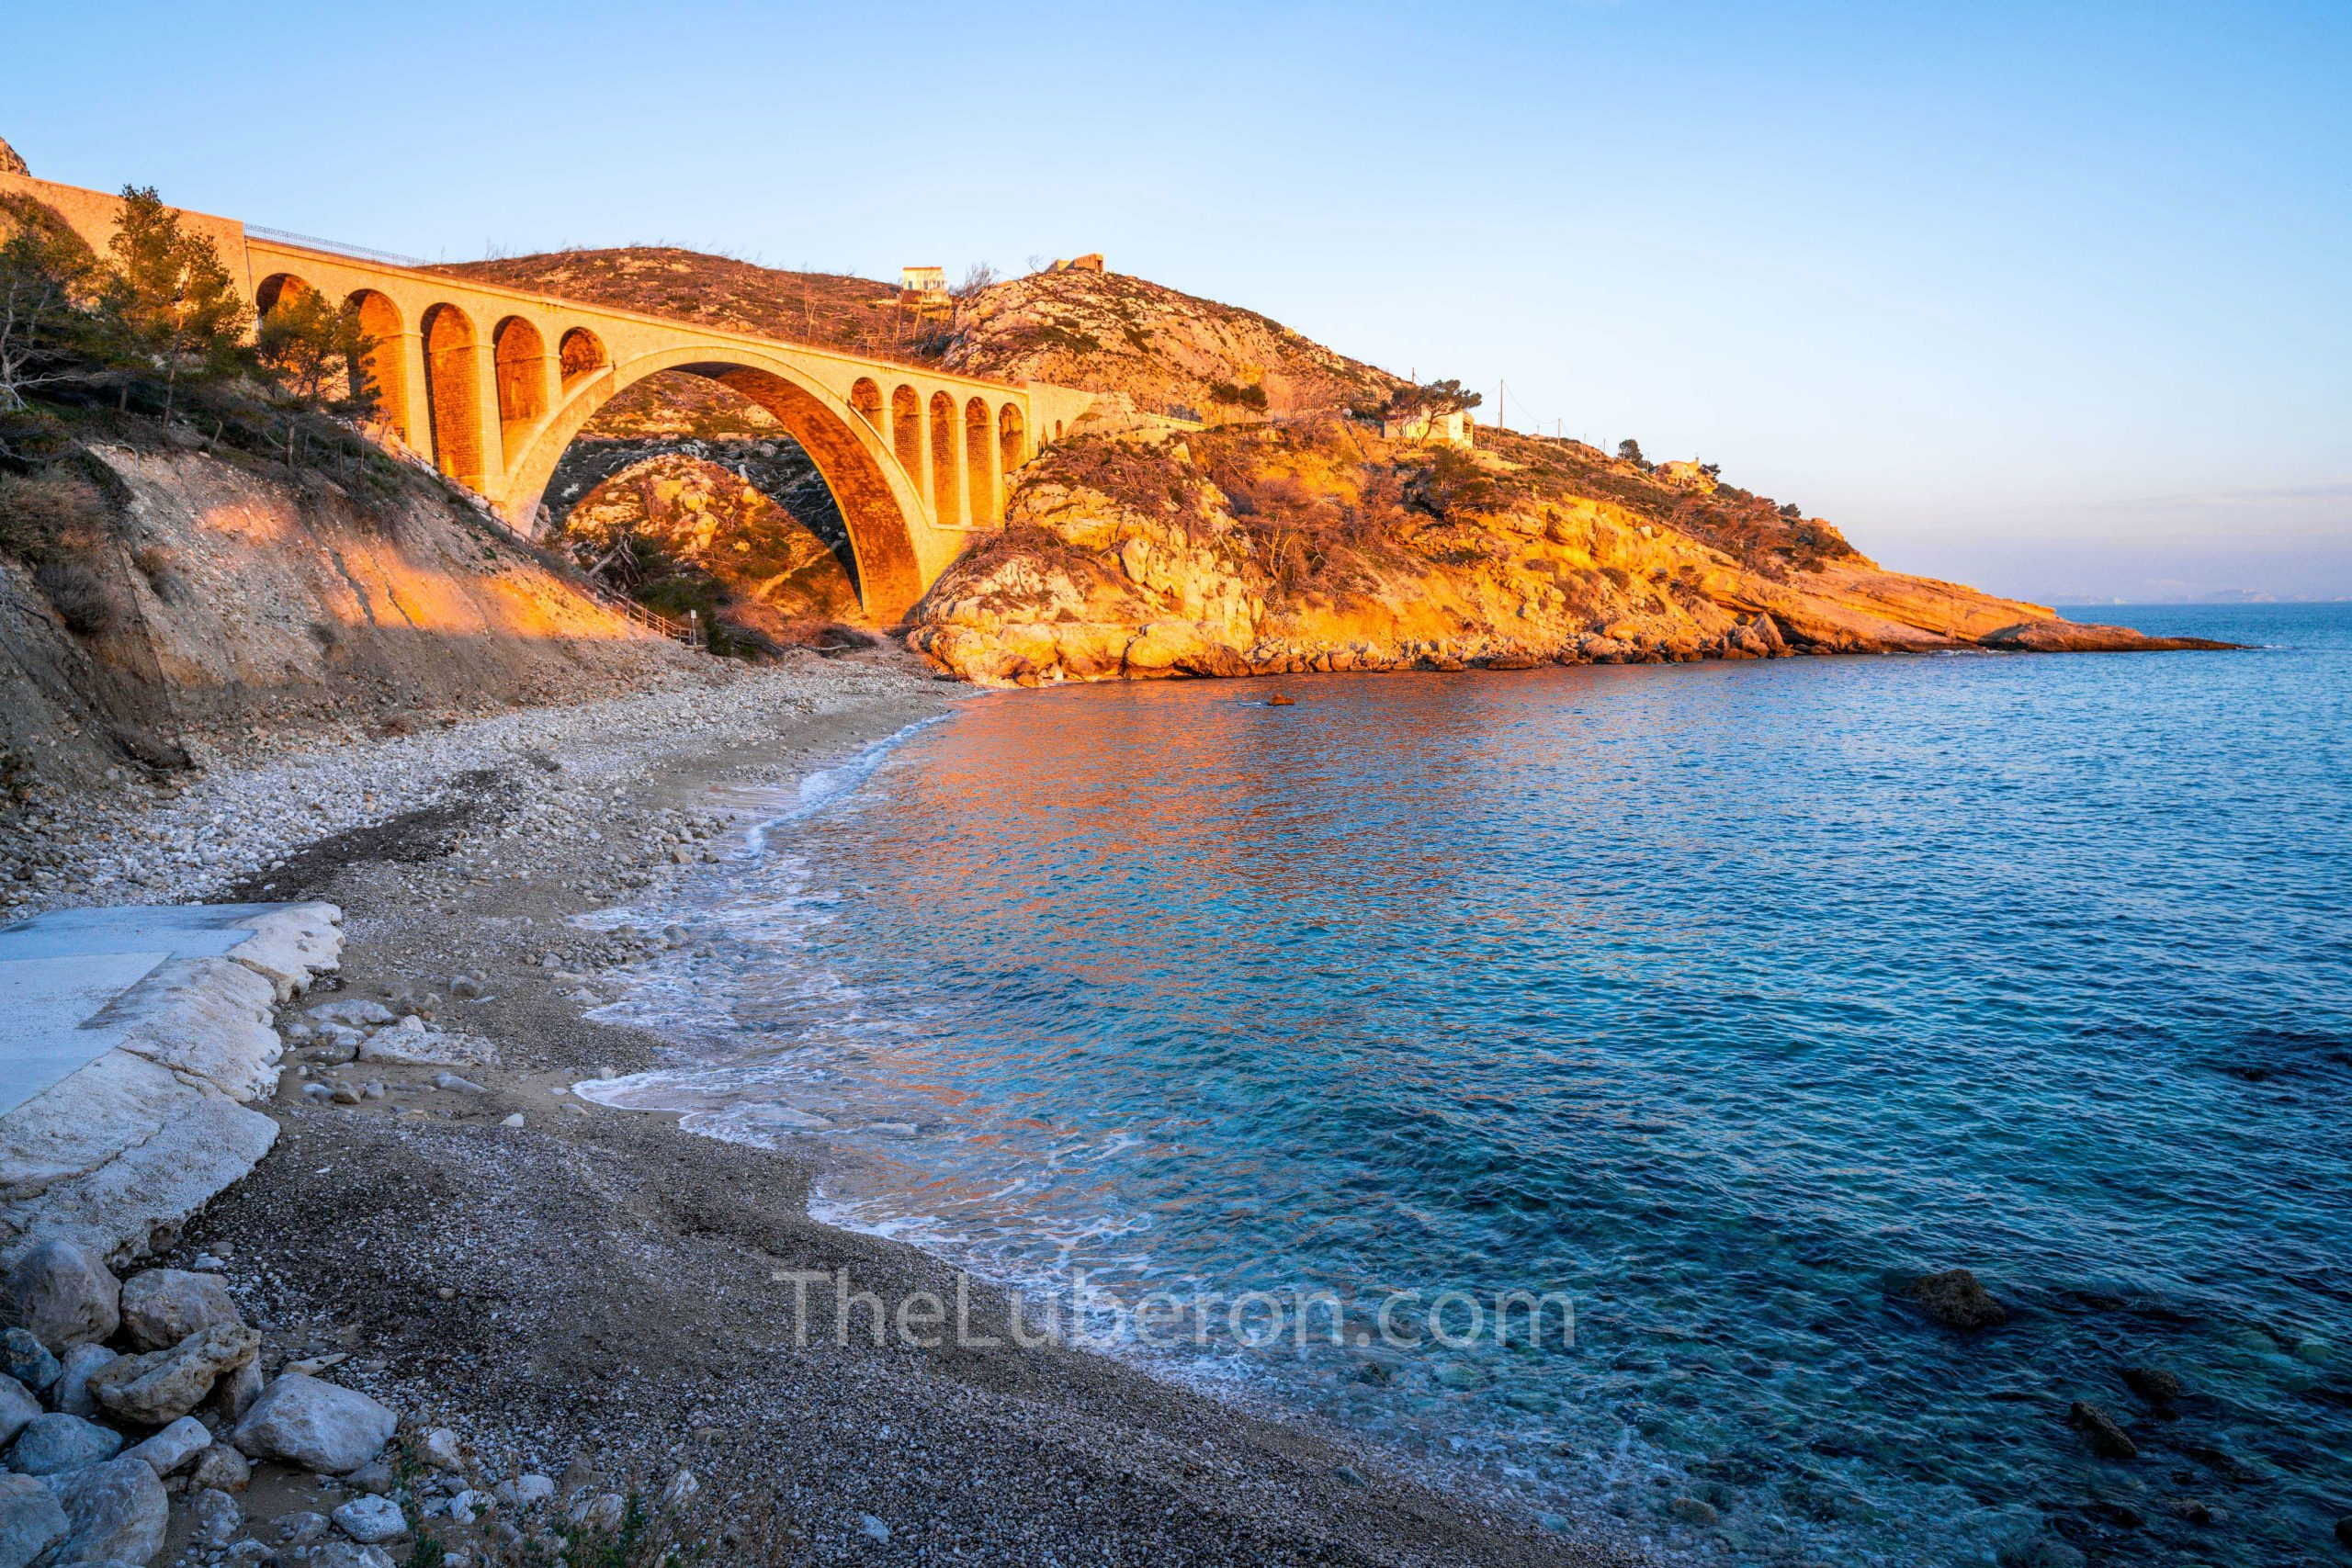 Viaduct and beach at Carry-le-Rouet